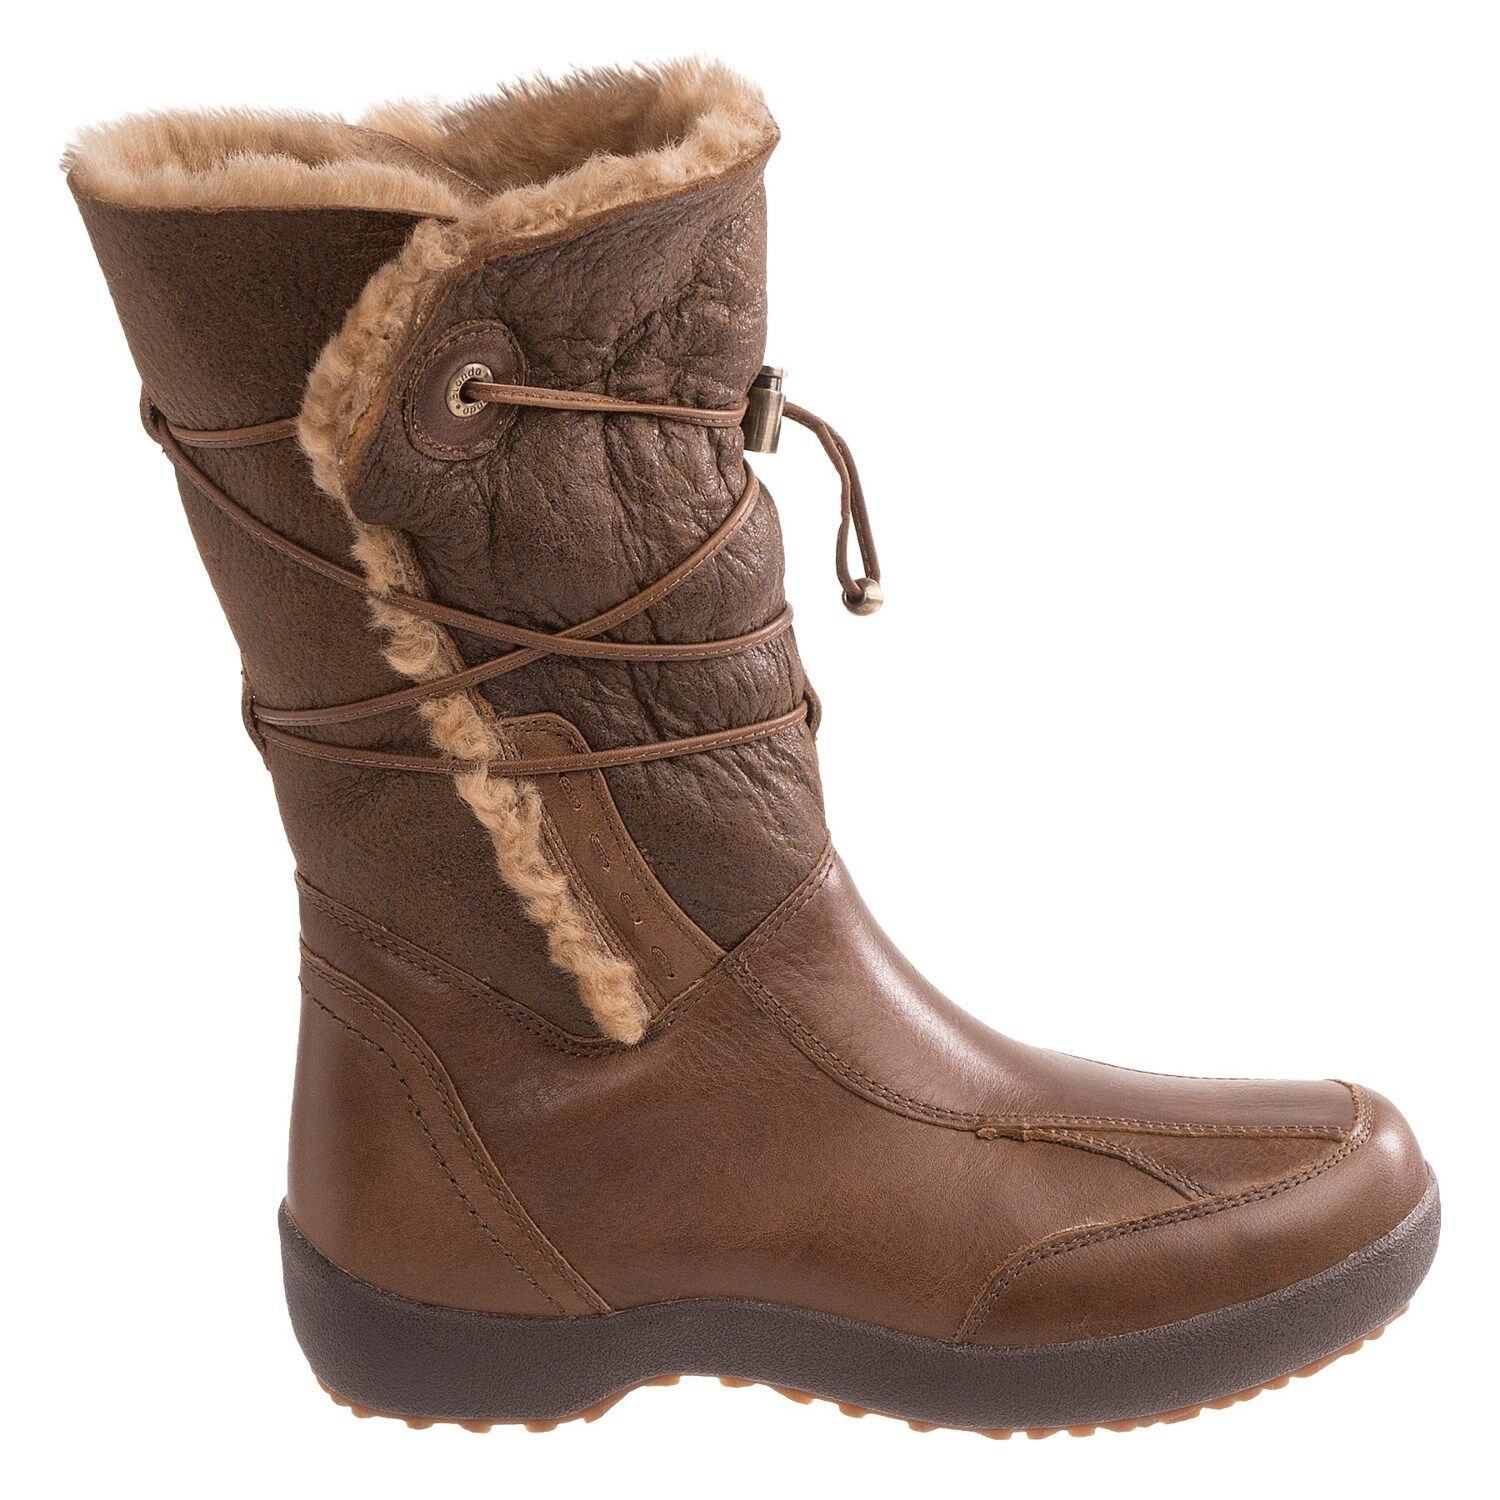 Blondo Waverly Hi Womens Cappuccino Brown Wool Lined Boots Size 10 New